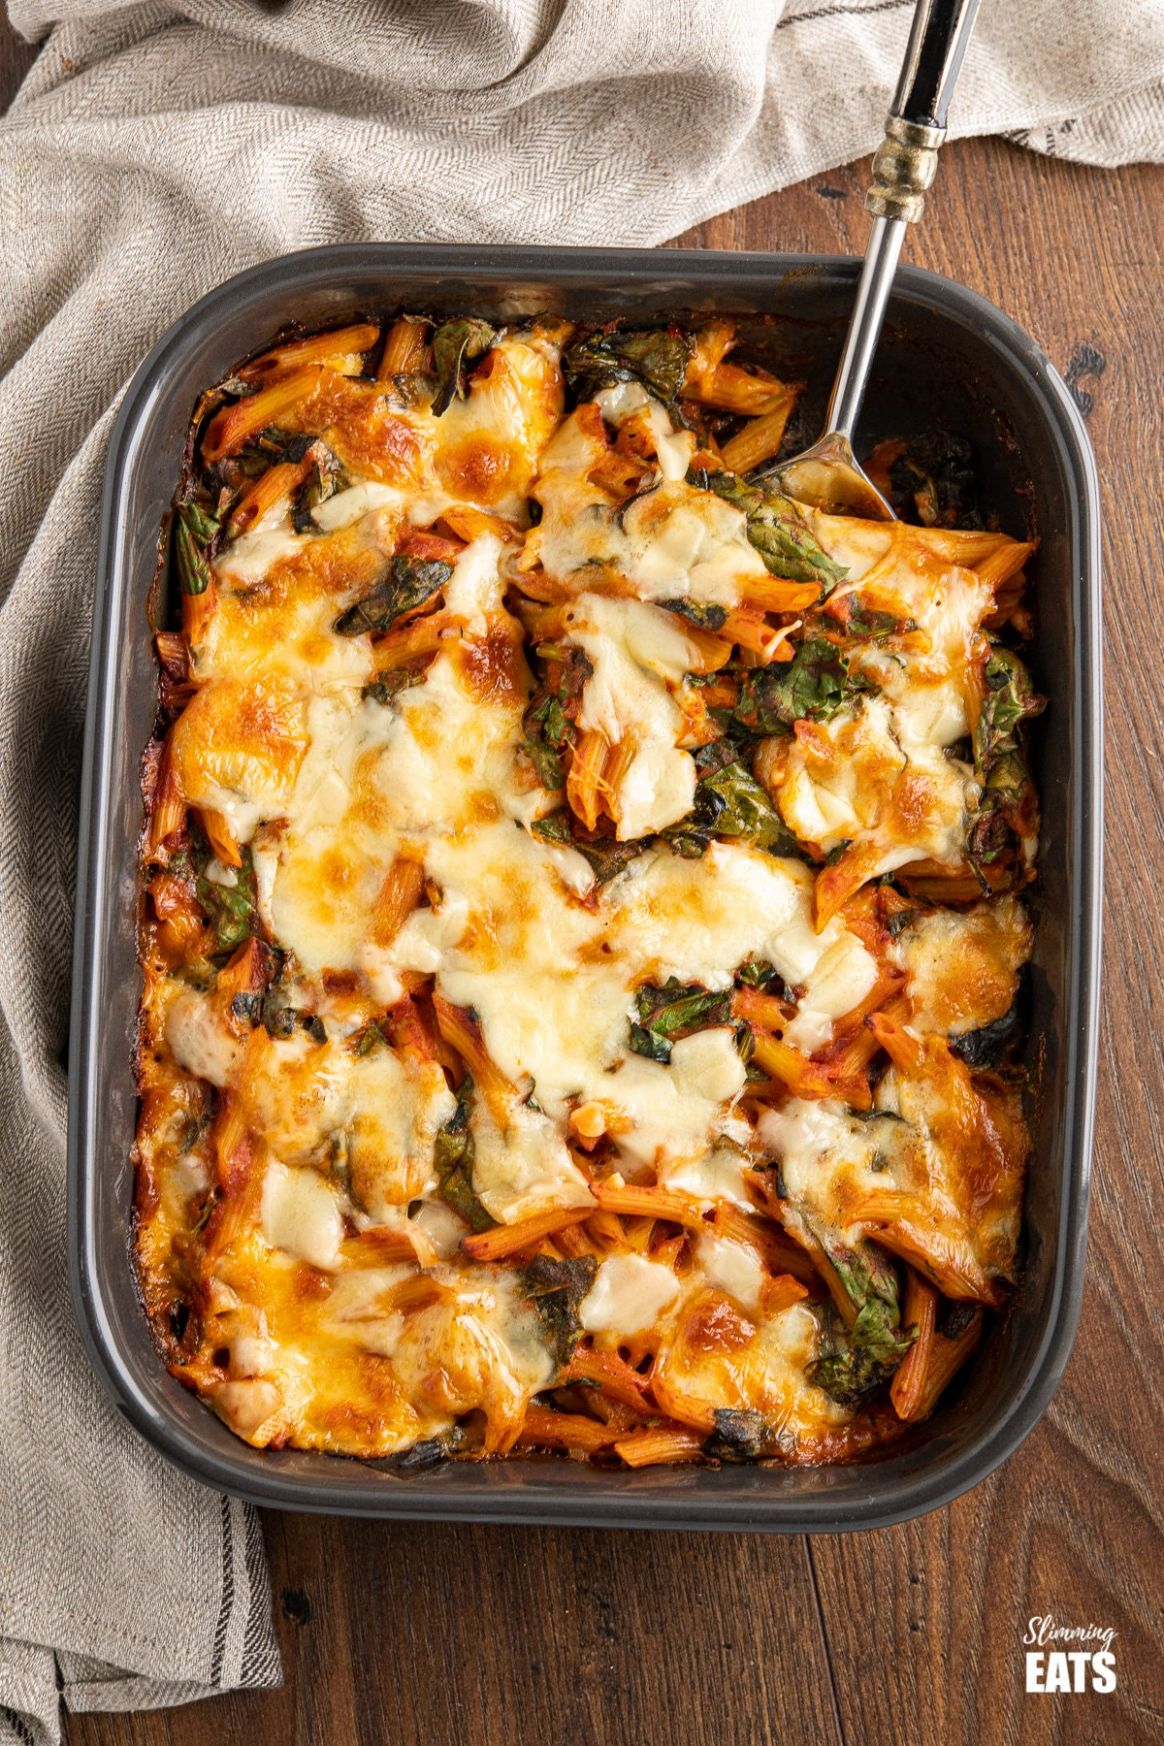 Easy Spinach Pasta Bake | Slimming Eats Recipes